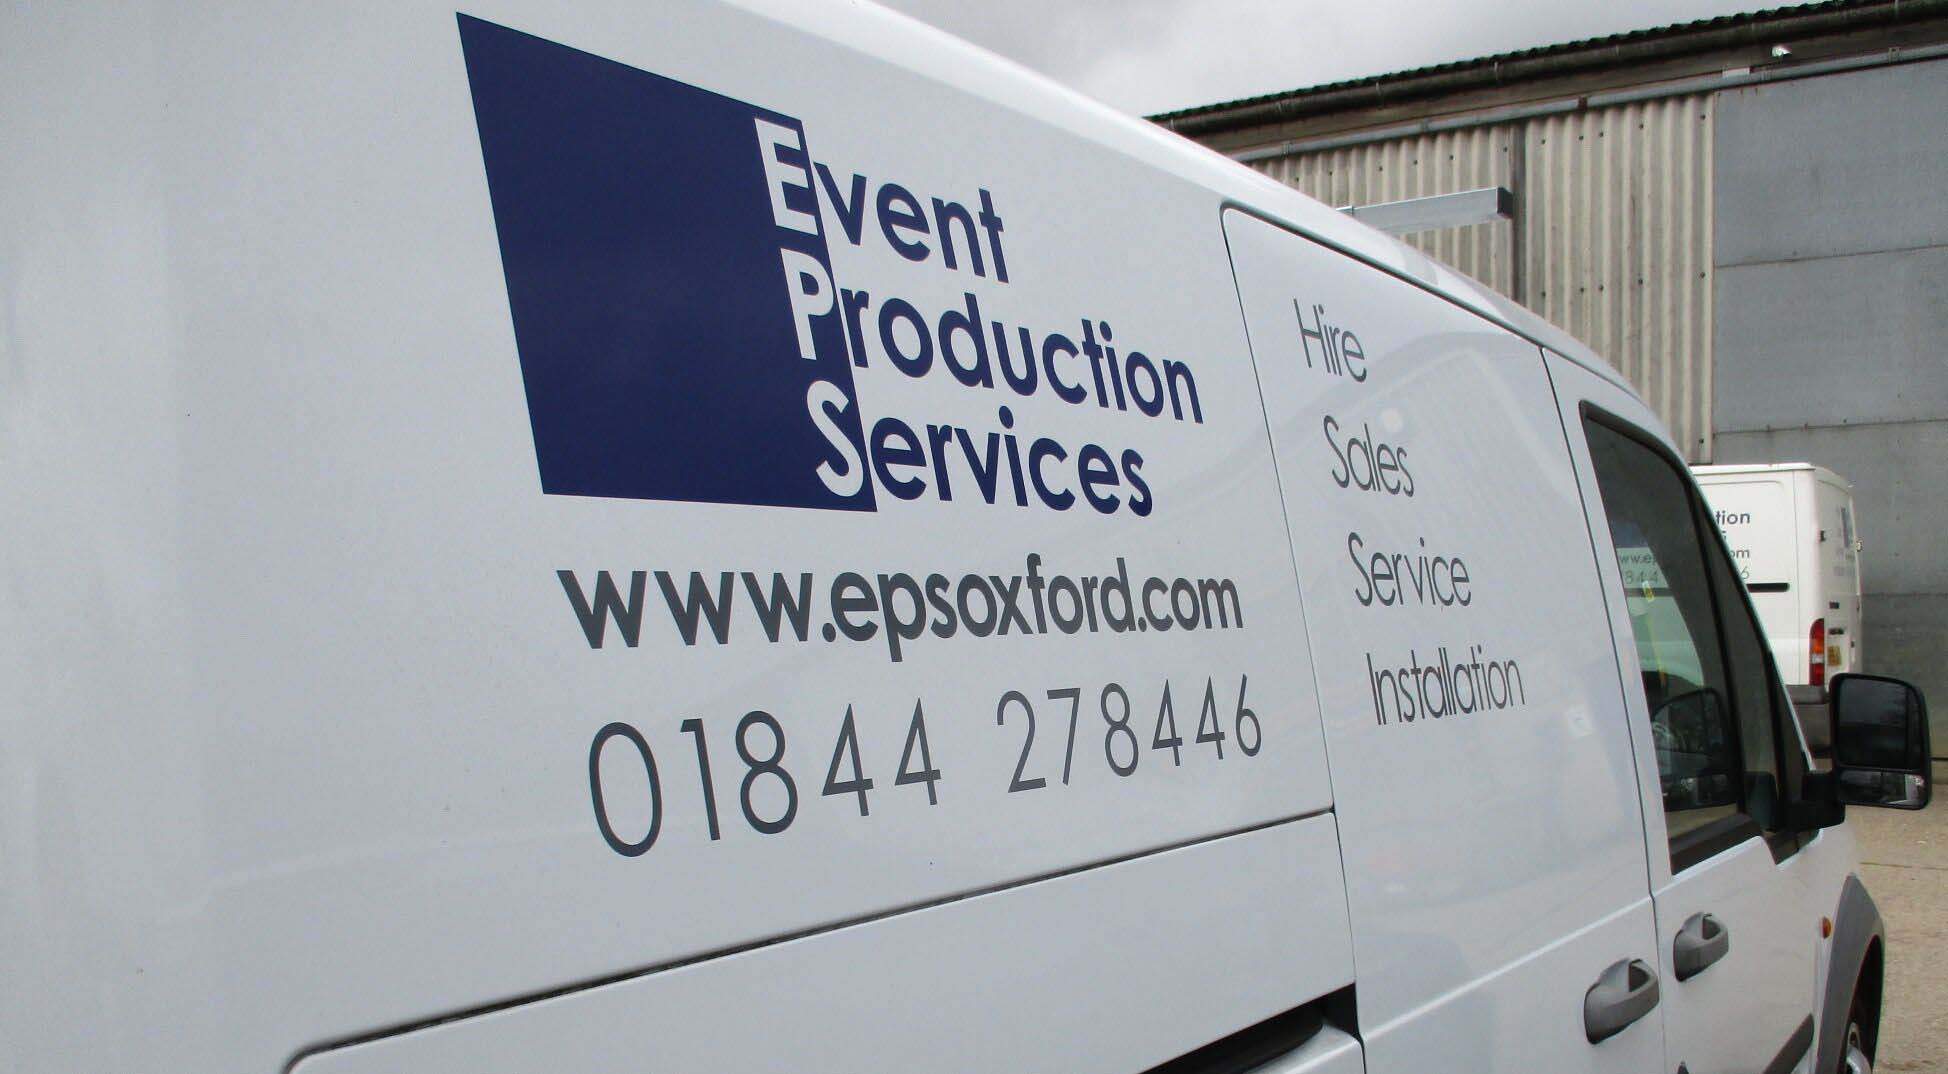 Event Production Services van